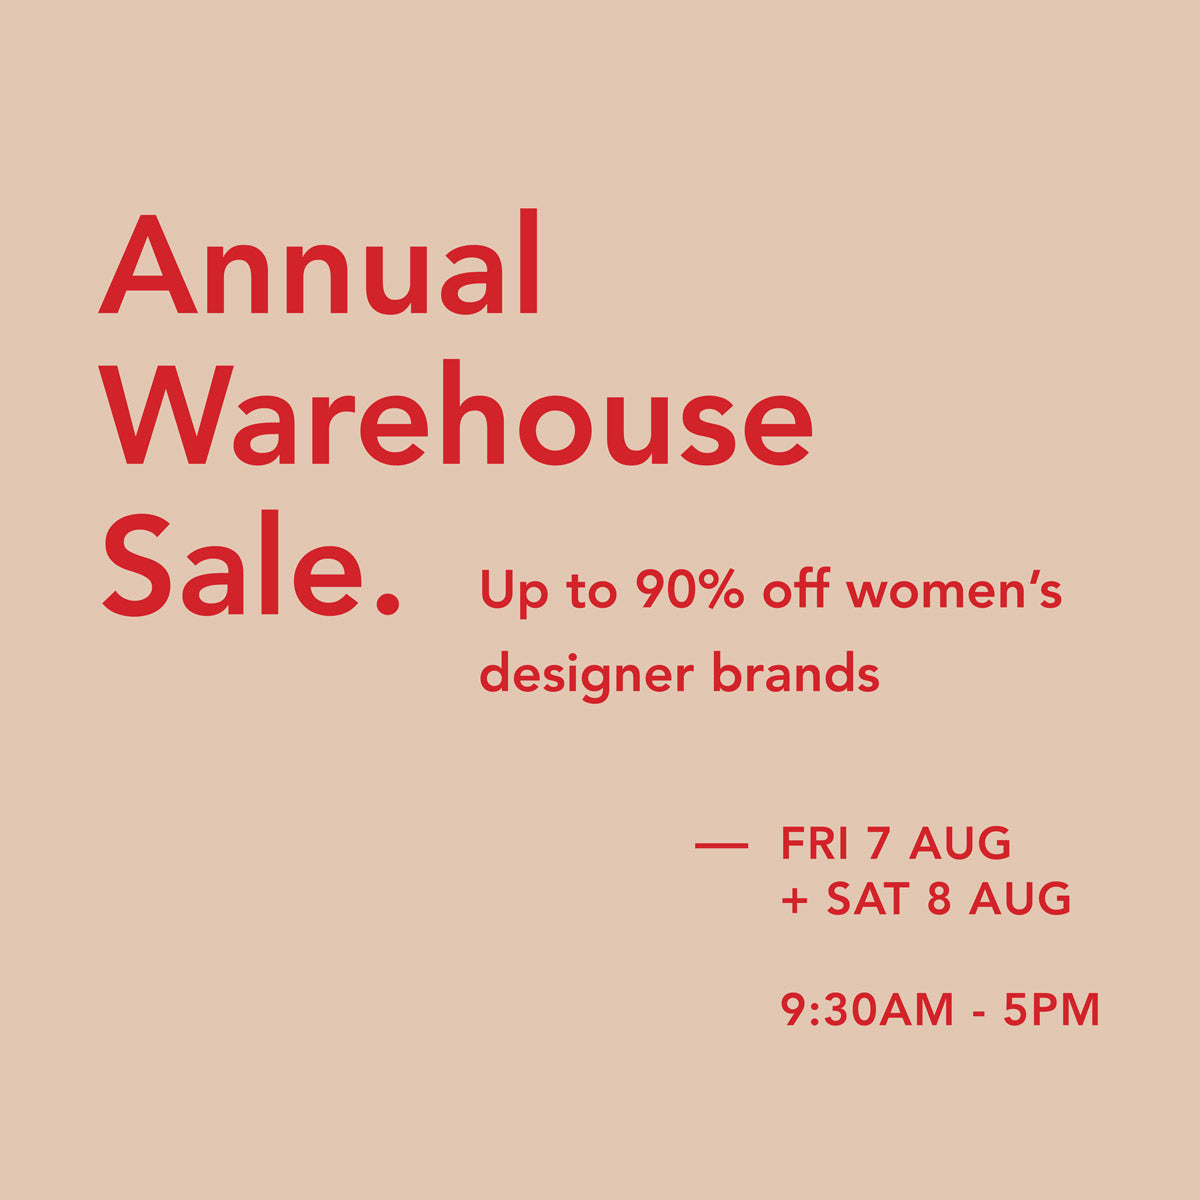 Annual Warehouse Sale - Up to 90% off women's designer fashion.